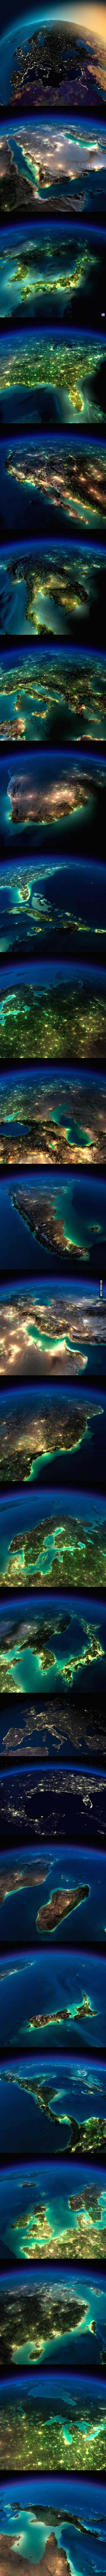 earth at night. God said it was good.